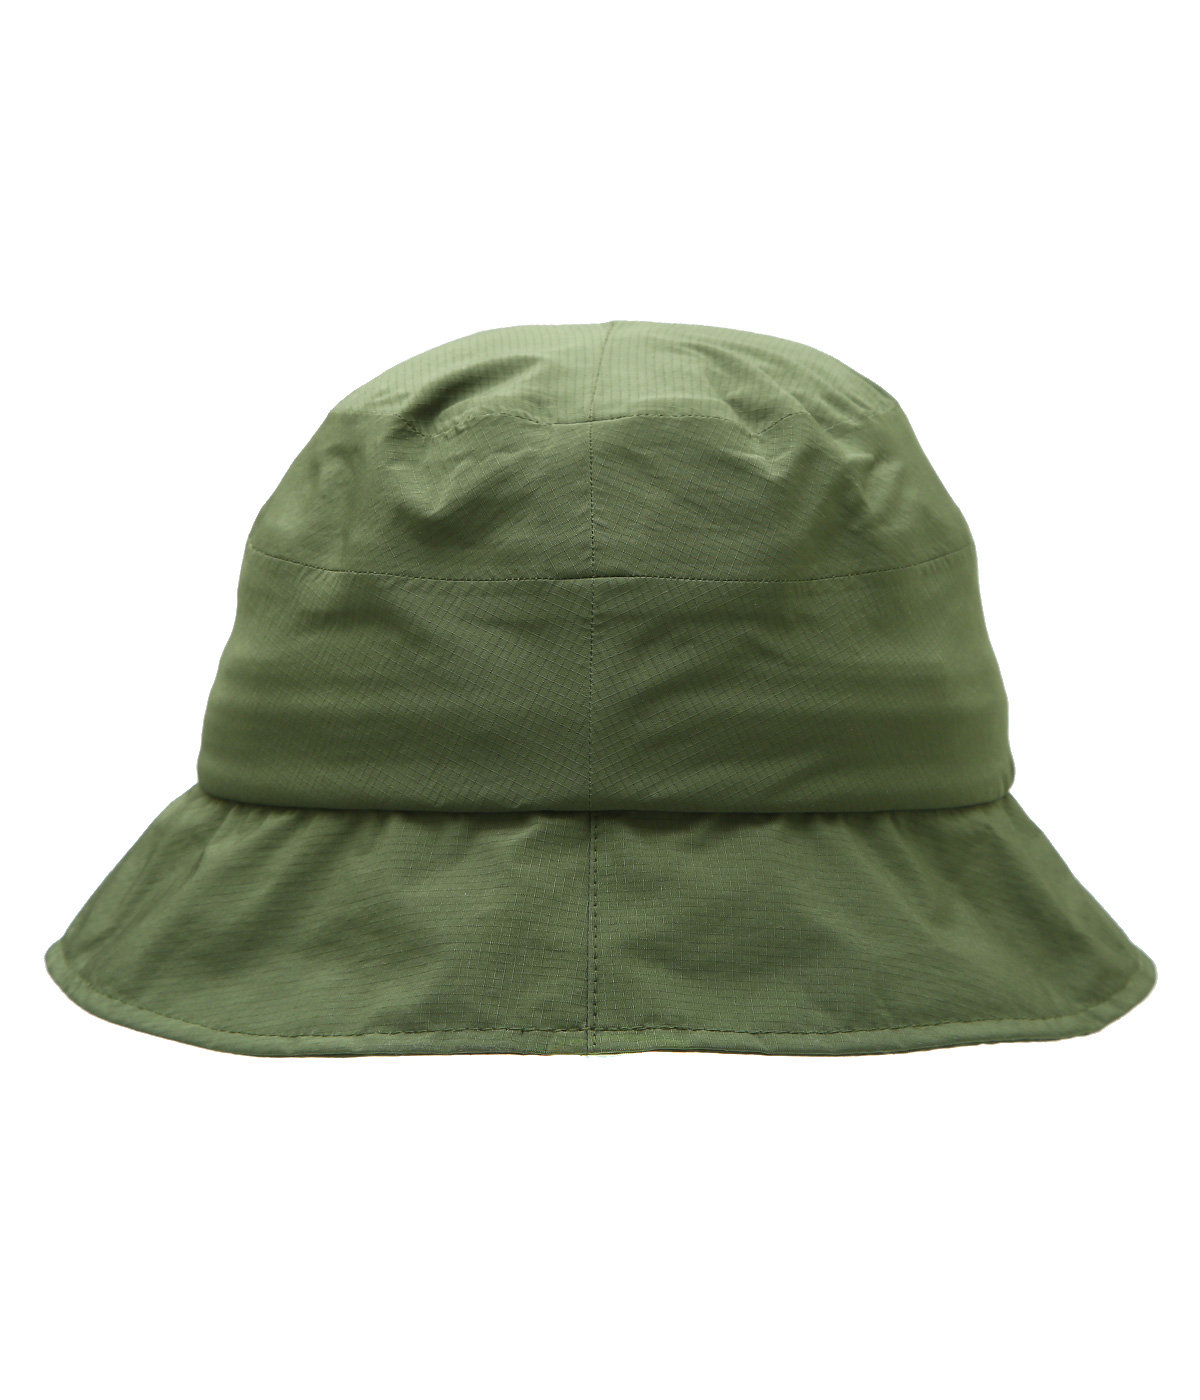 Outdoor Panel Bucket Hat